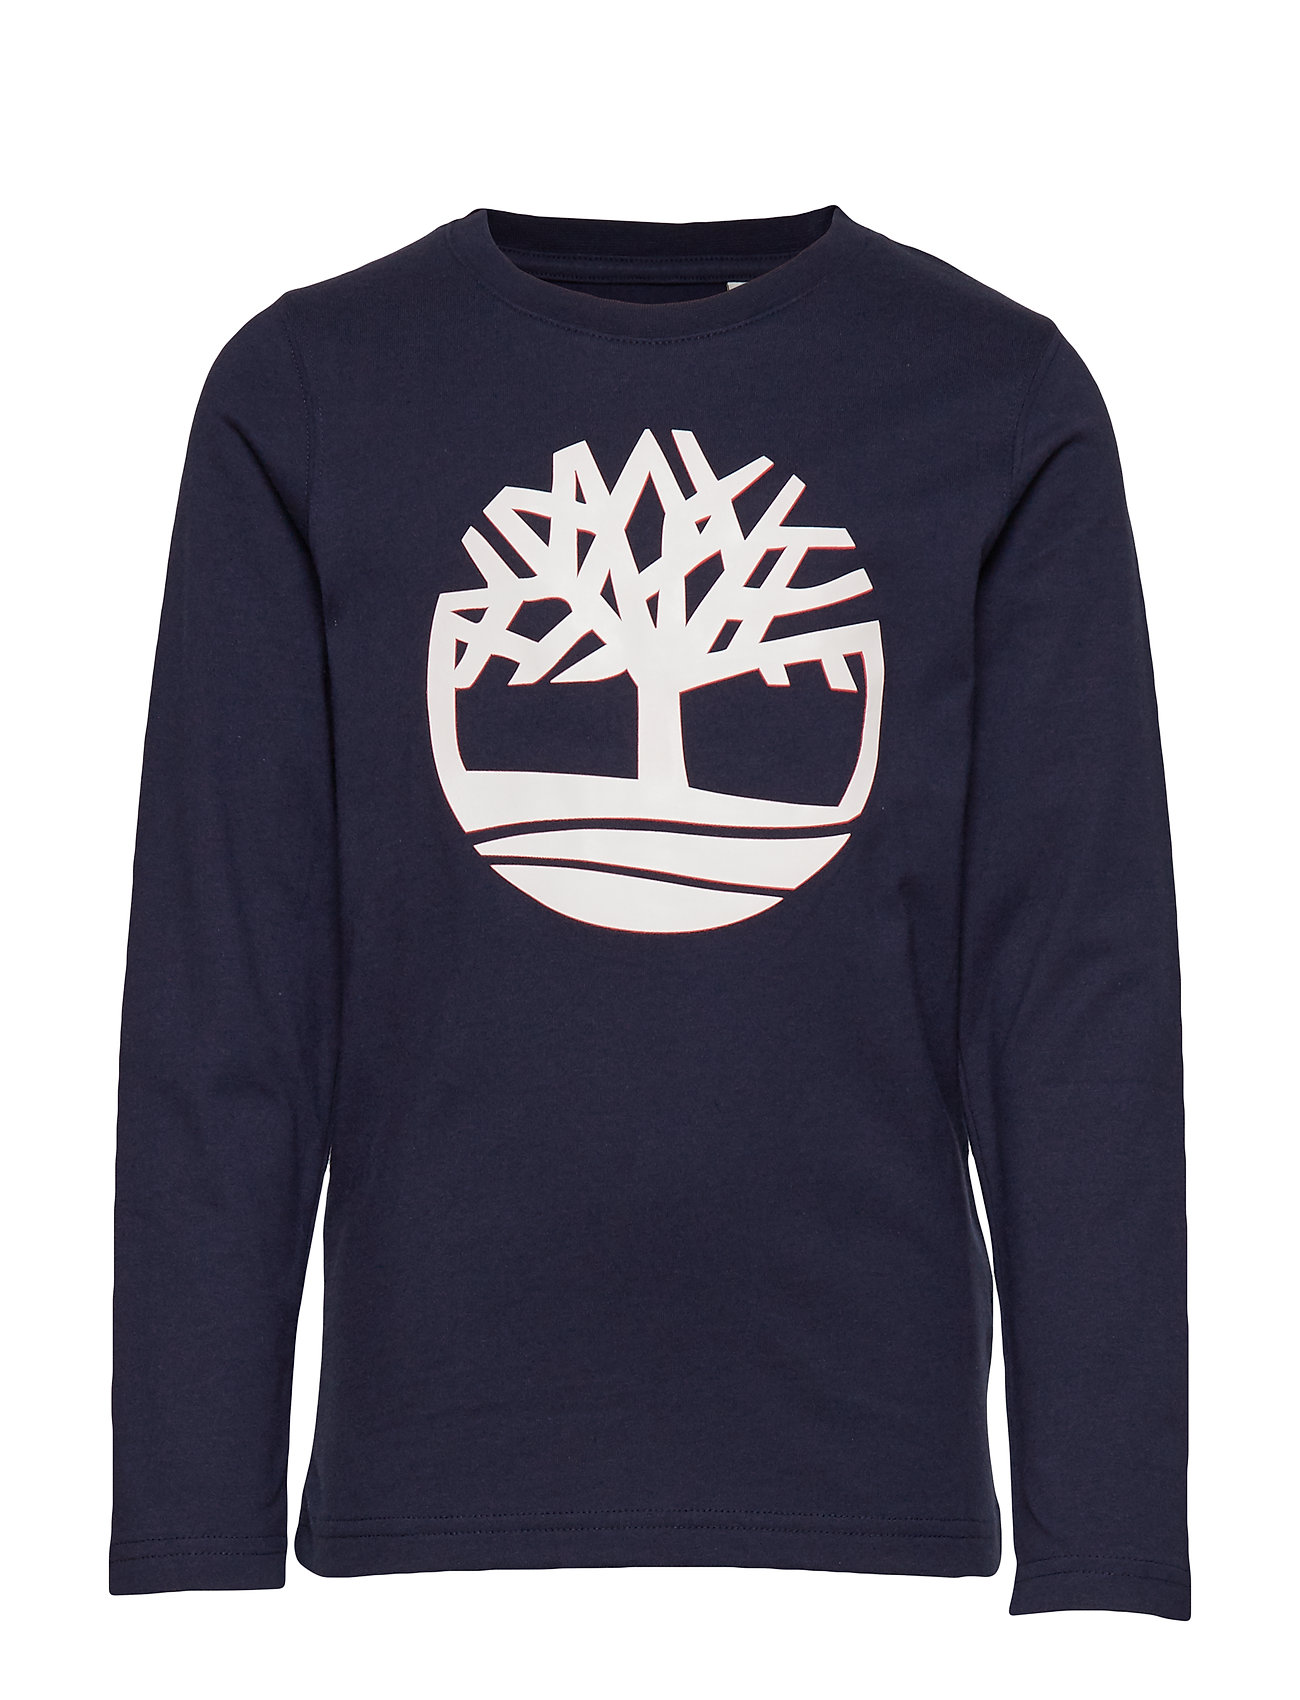 Timberland LONG SLEEVE T-SHIRT - NAVY